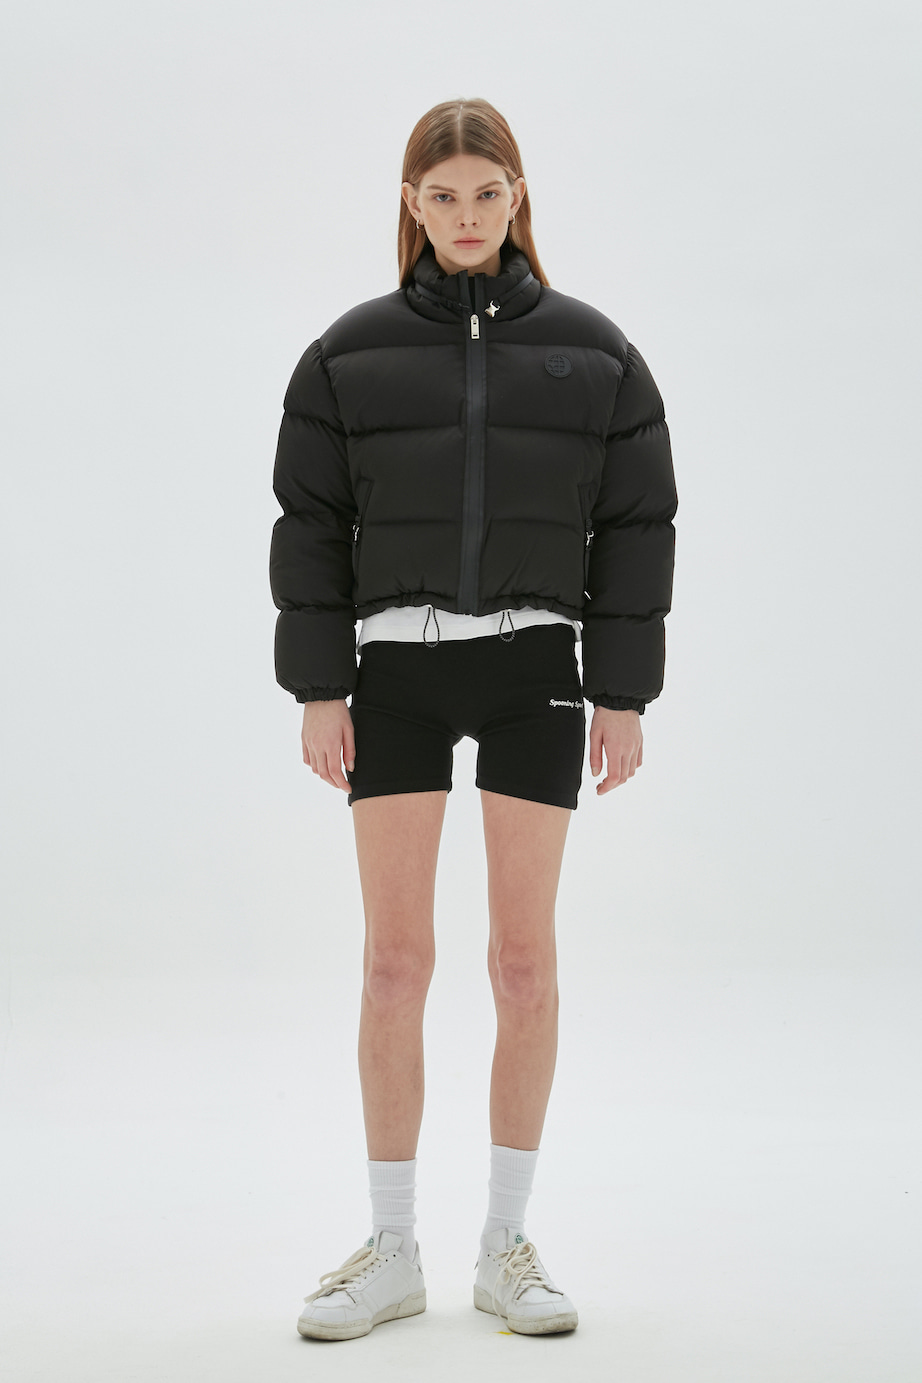 [DROP 5] SPOONING DUCK-DOWN PUFFER JACKET